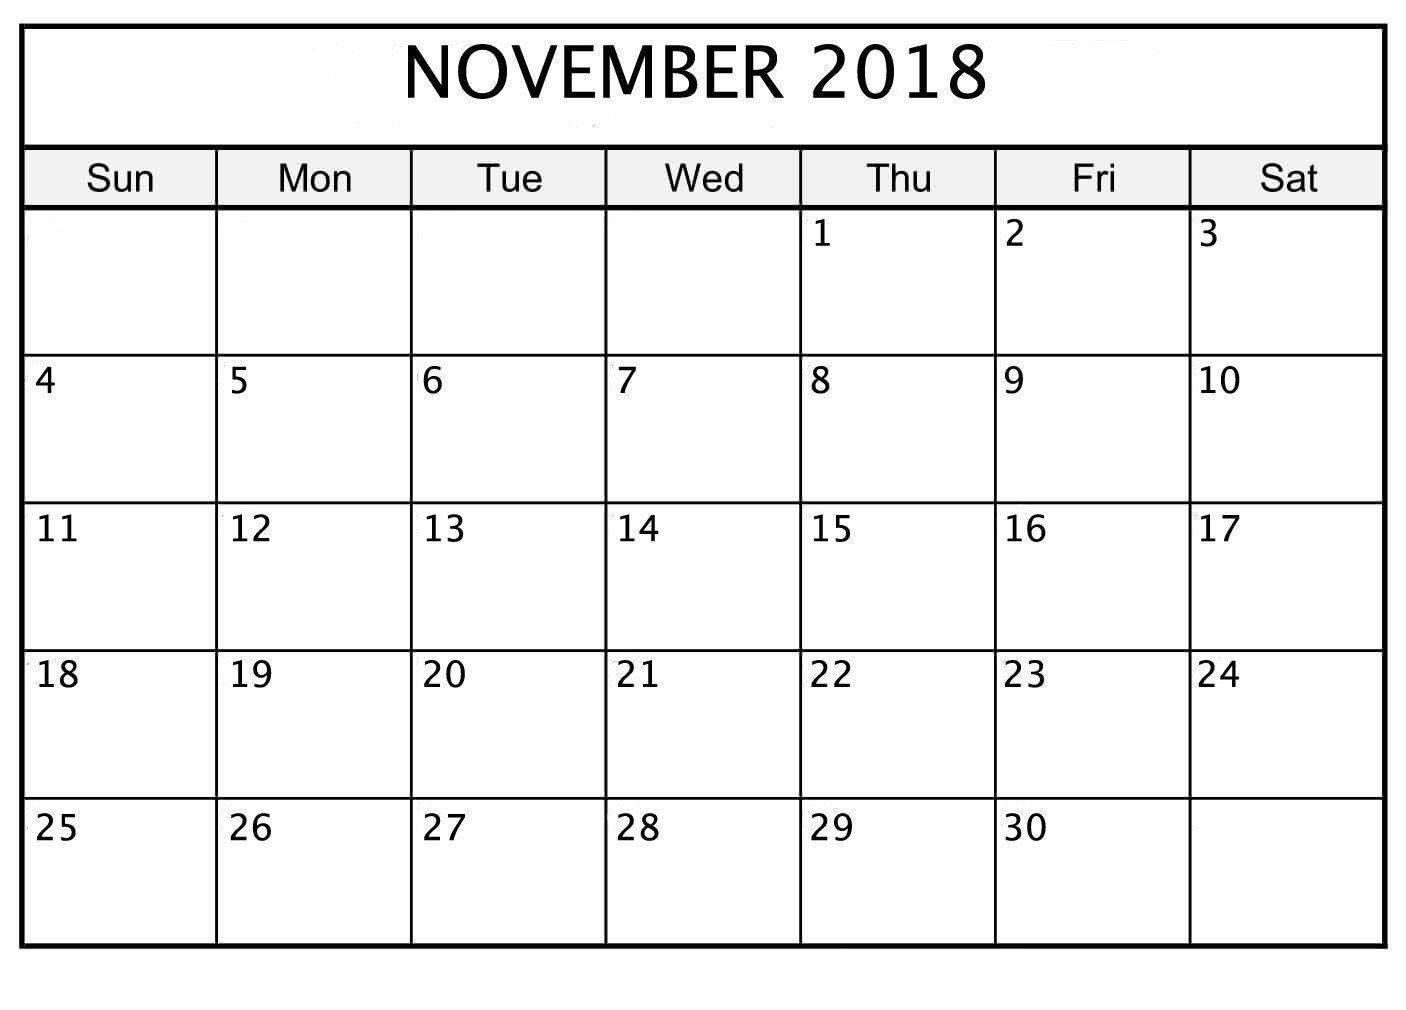 photograph regarding Printable November Calendar named Cost-free Calendar Layout November 2018 Printable November 2018